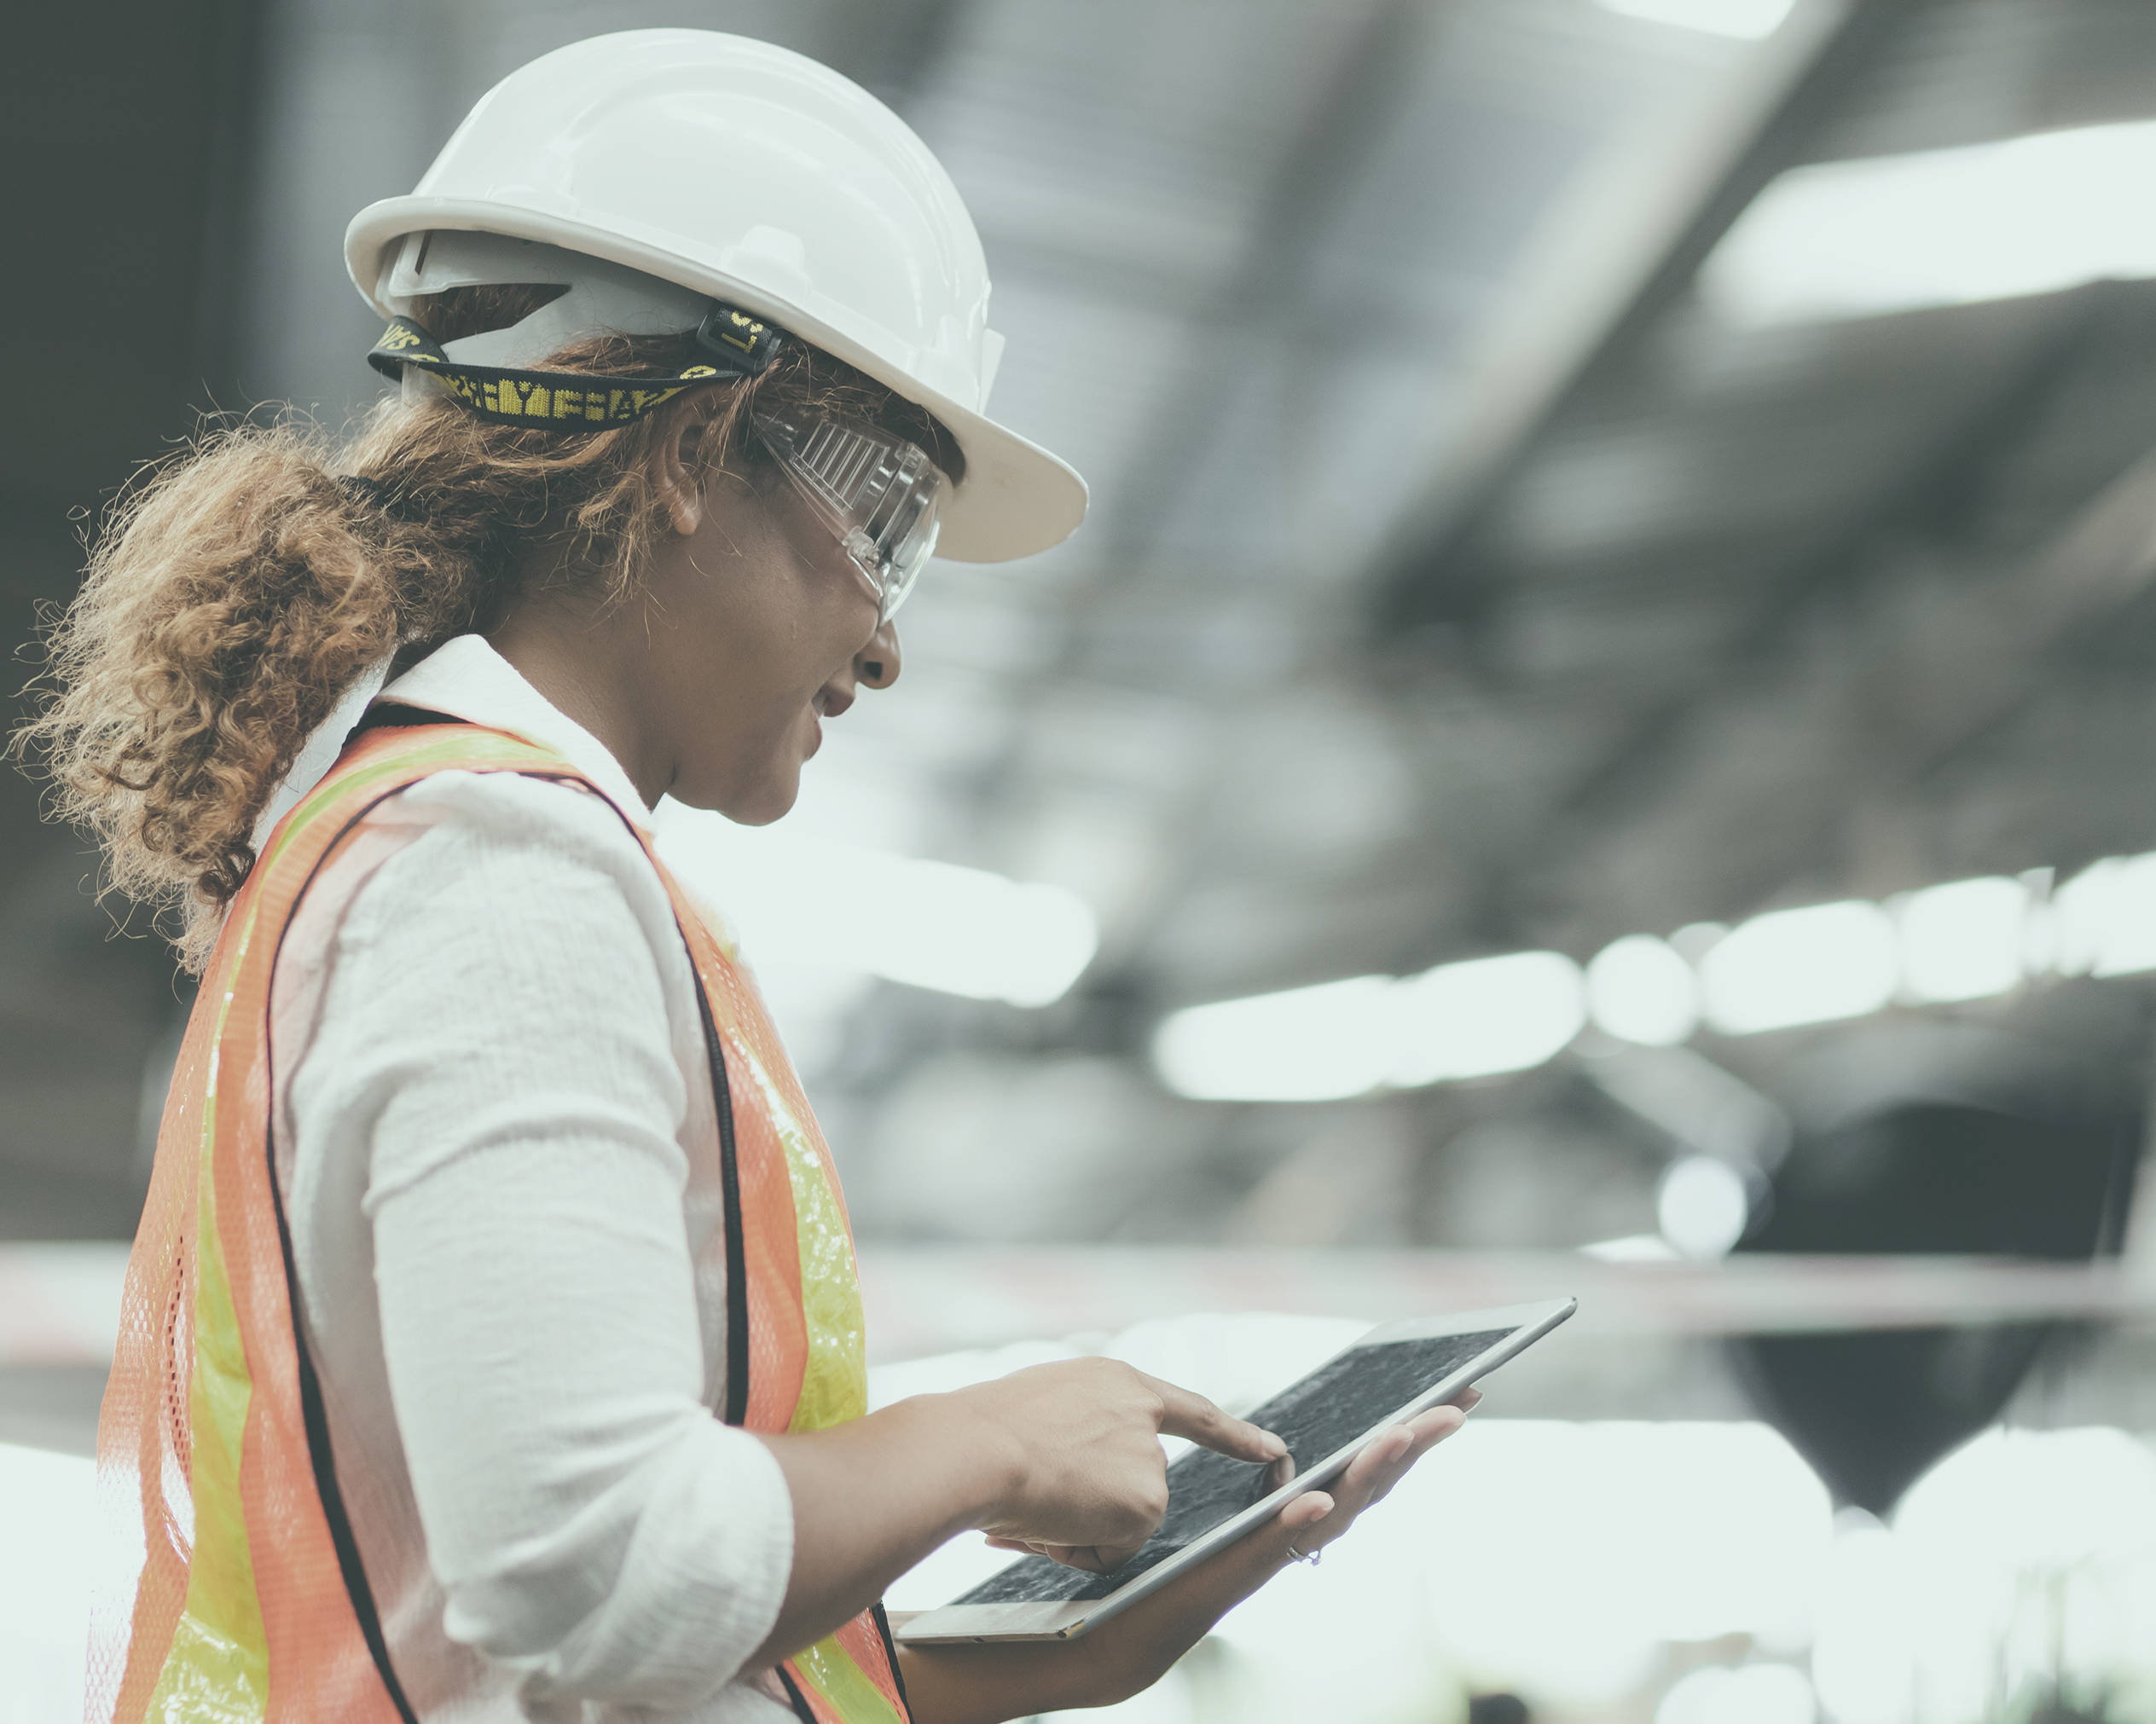 itsa 365: Woman with safety helmet typing on her tablet in her hand